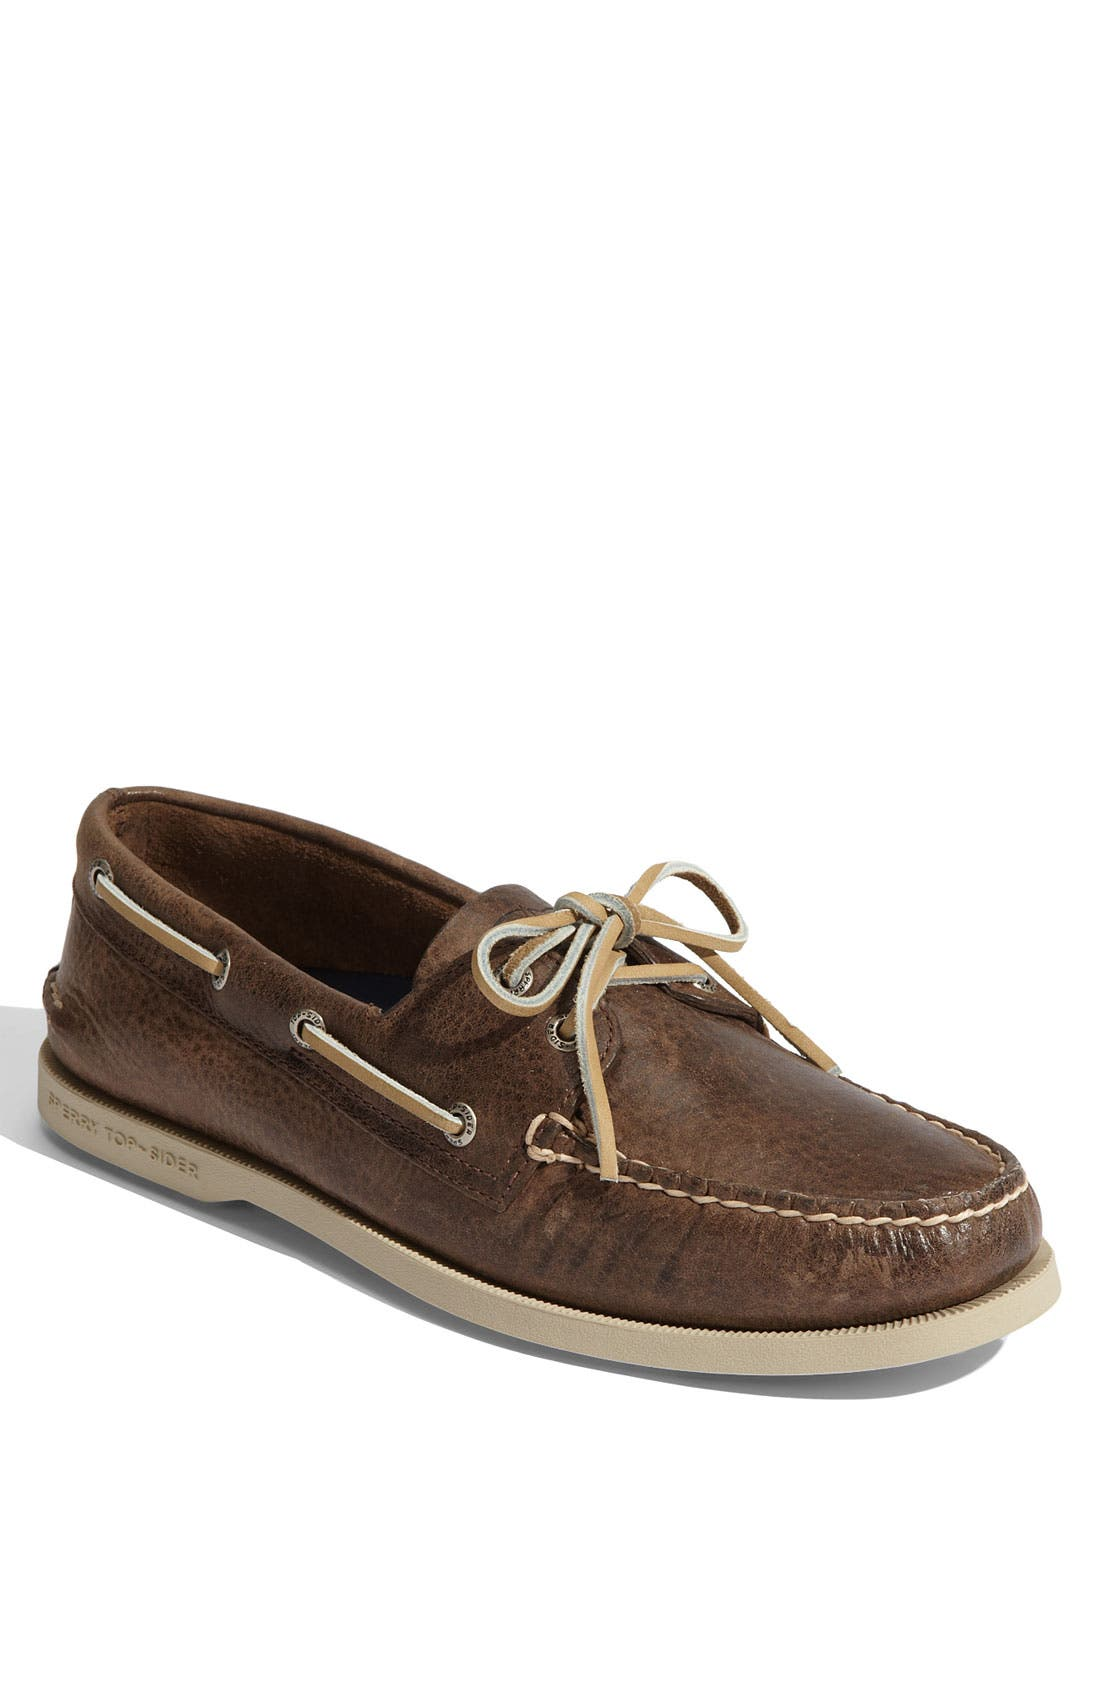 Alternate Image 1 Selected - Sperry Top-Sider® 'Authentic Original' Salt Washed Boat Shoe